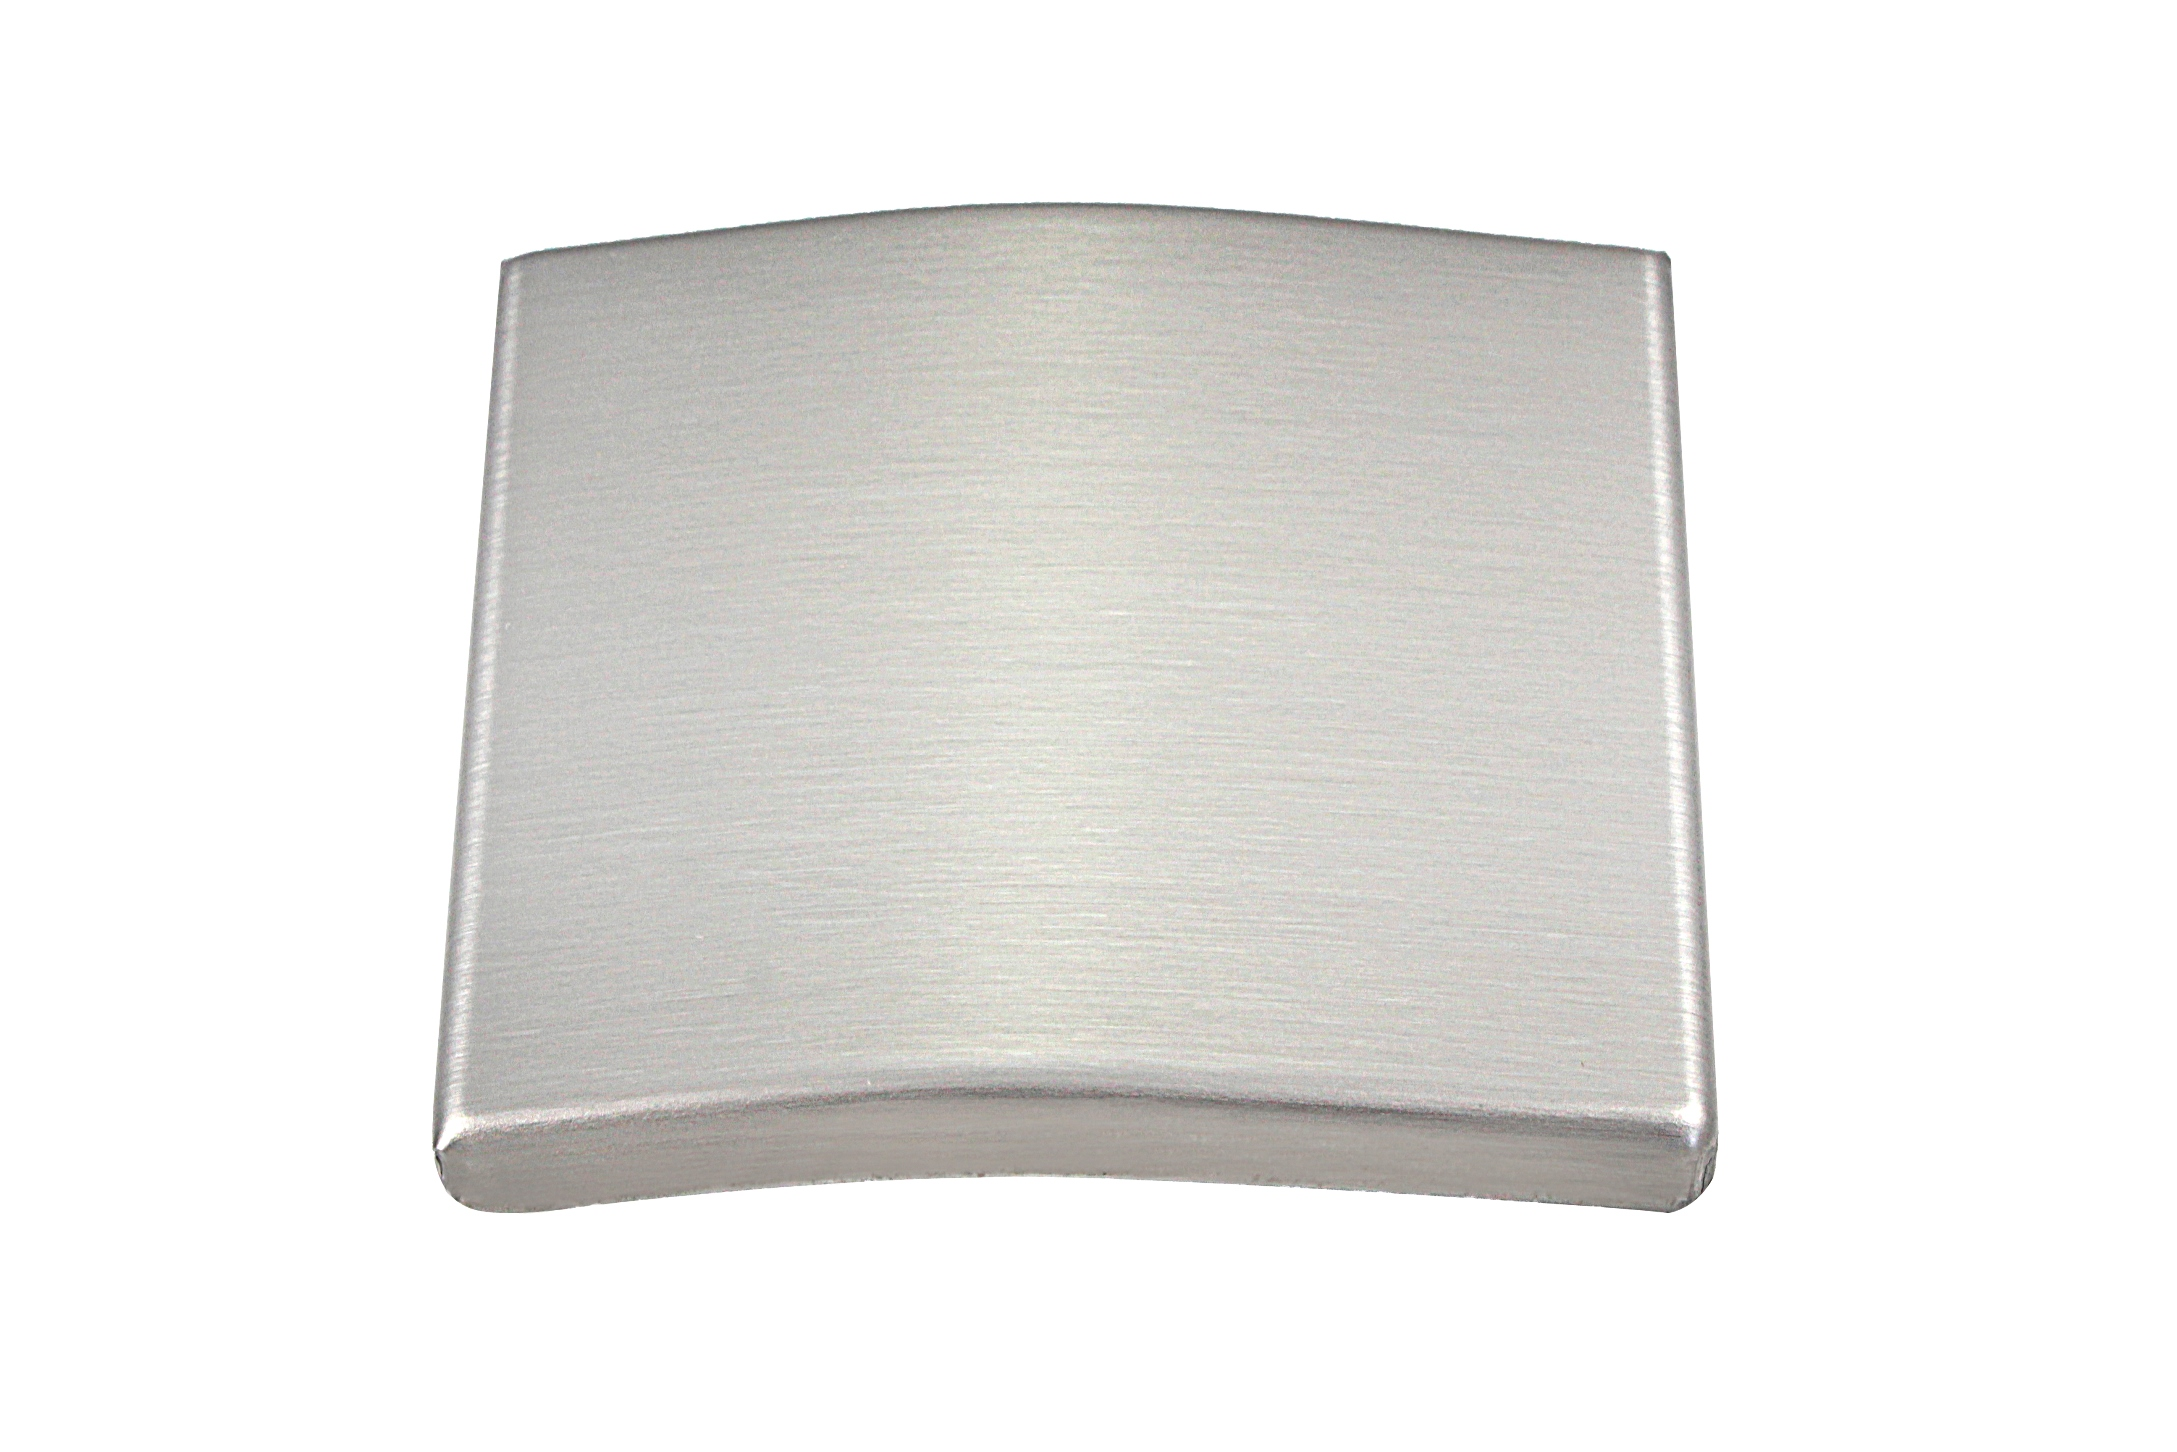 4 X Accent Woven Stainless Steel Tile